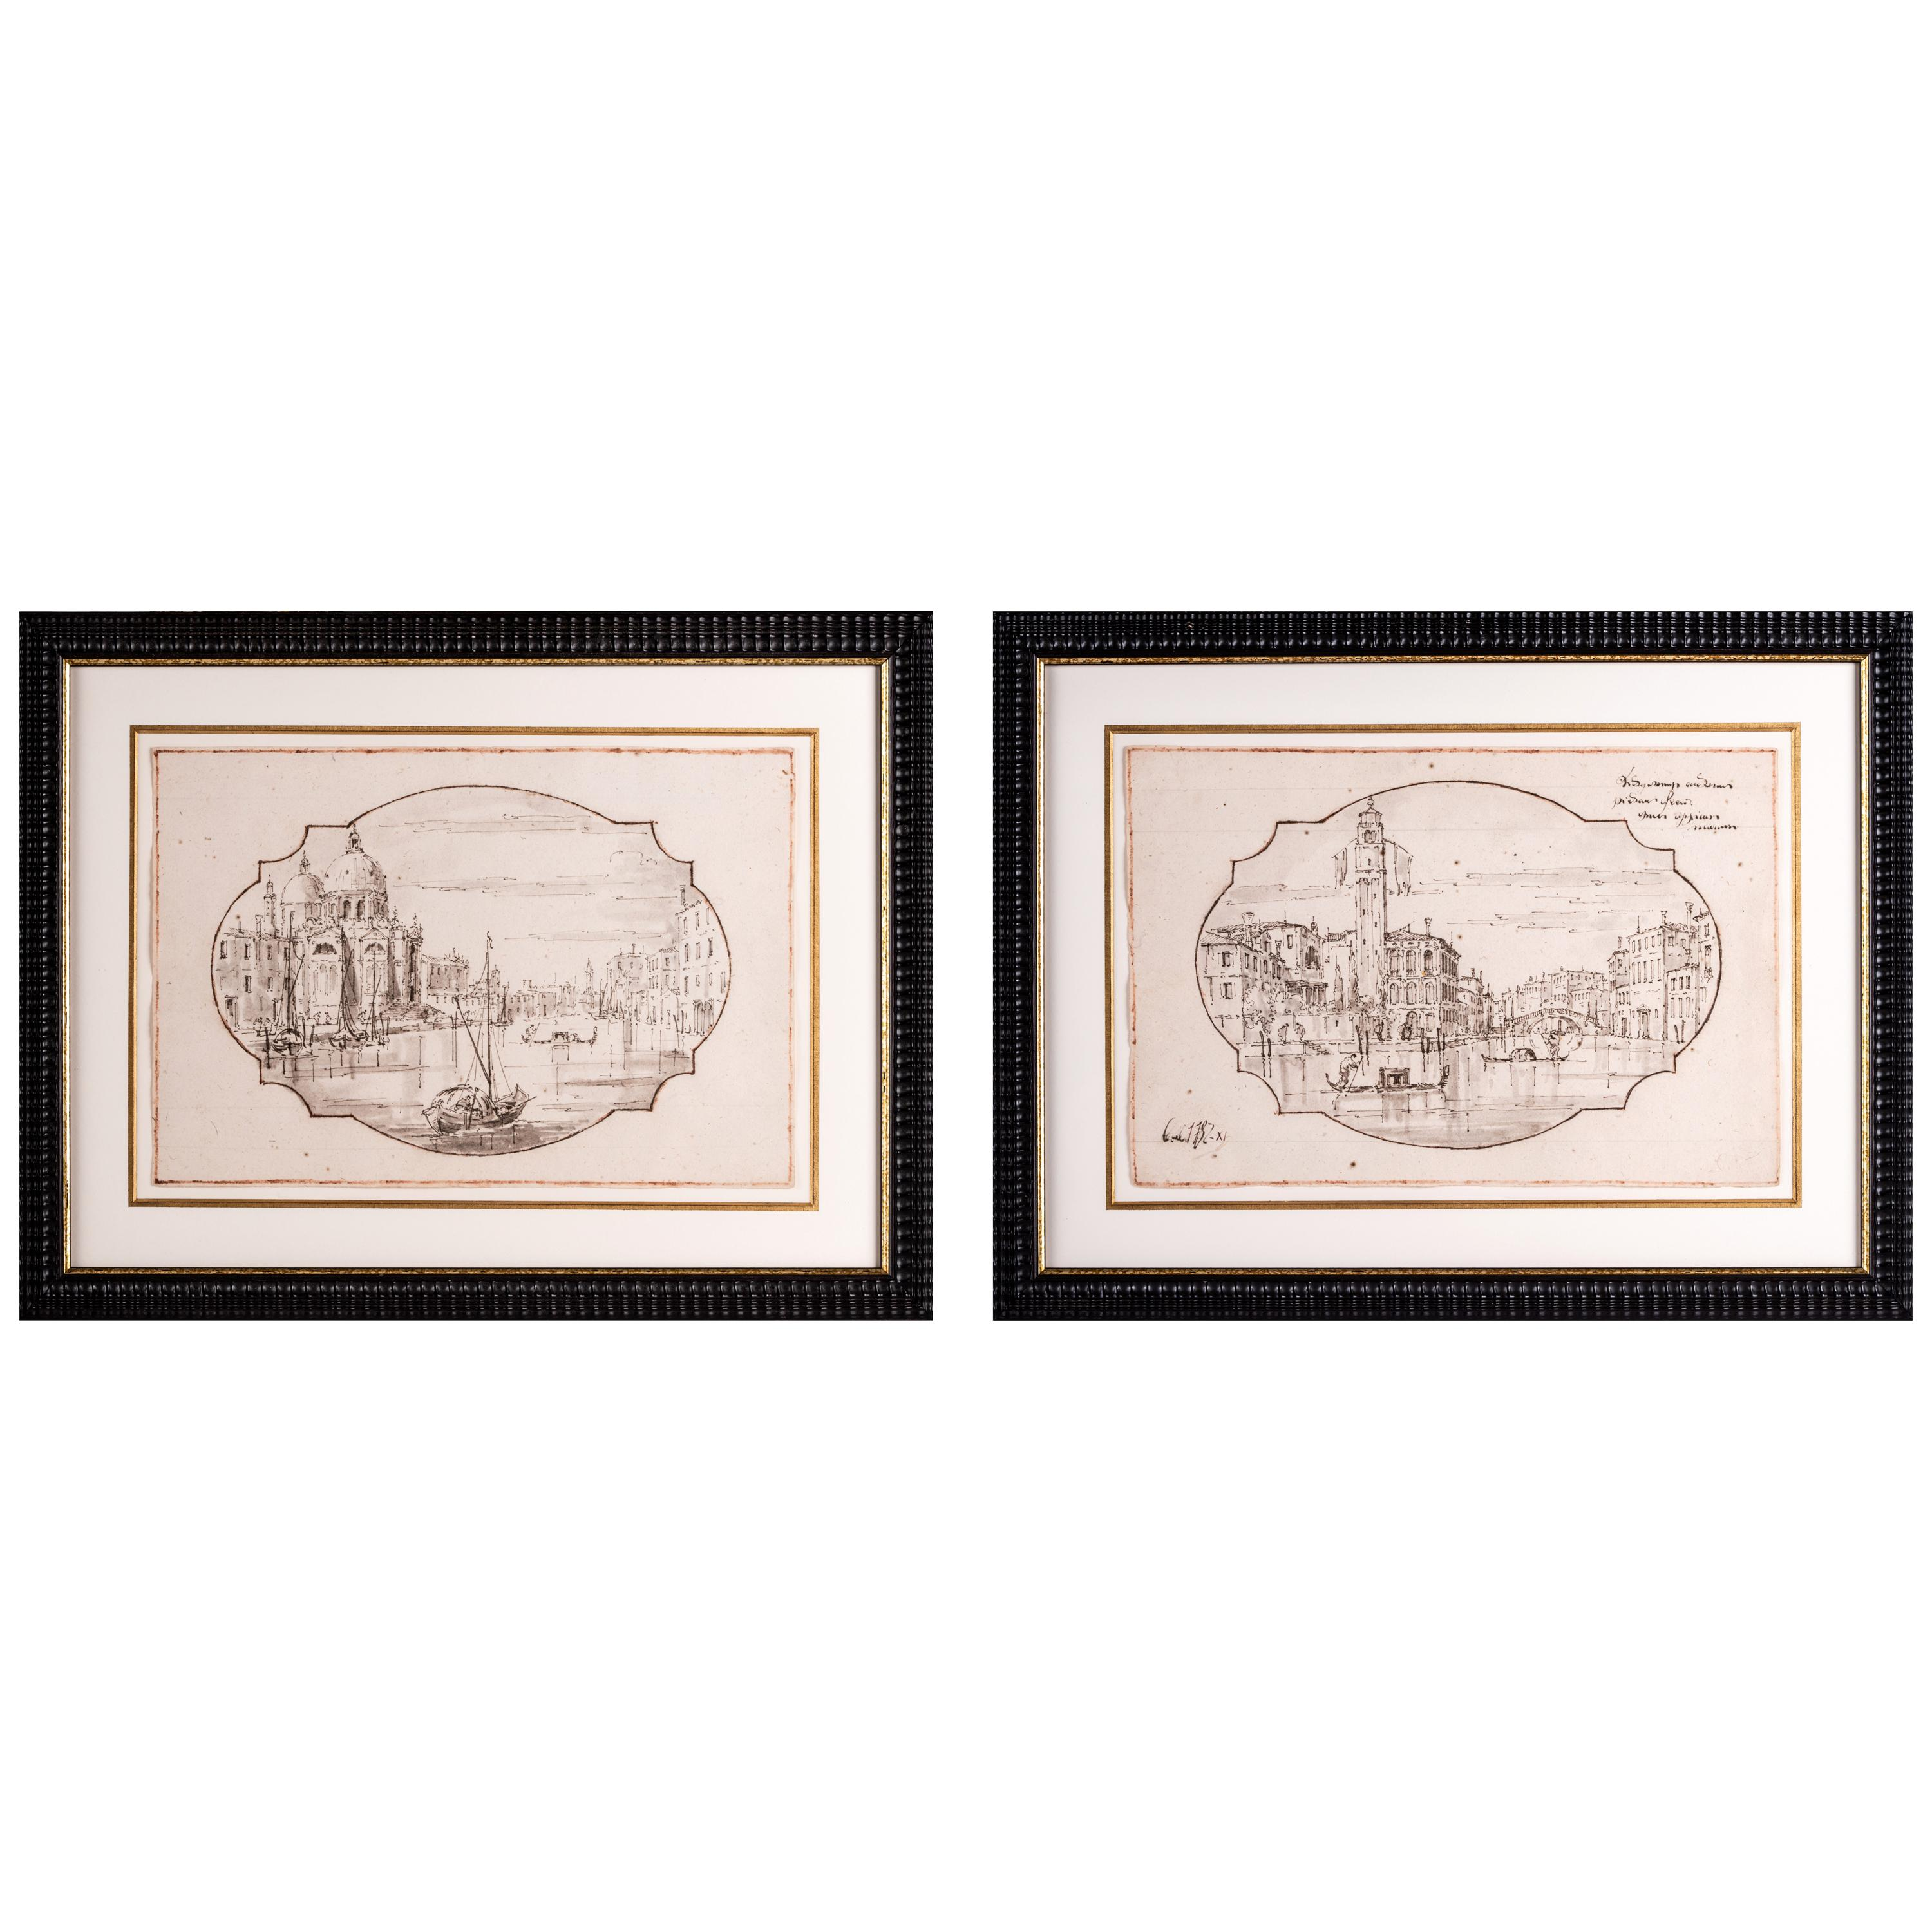 Pair of 18th Century Venetian Views of the Grand Canal